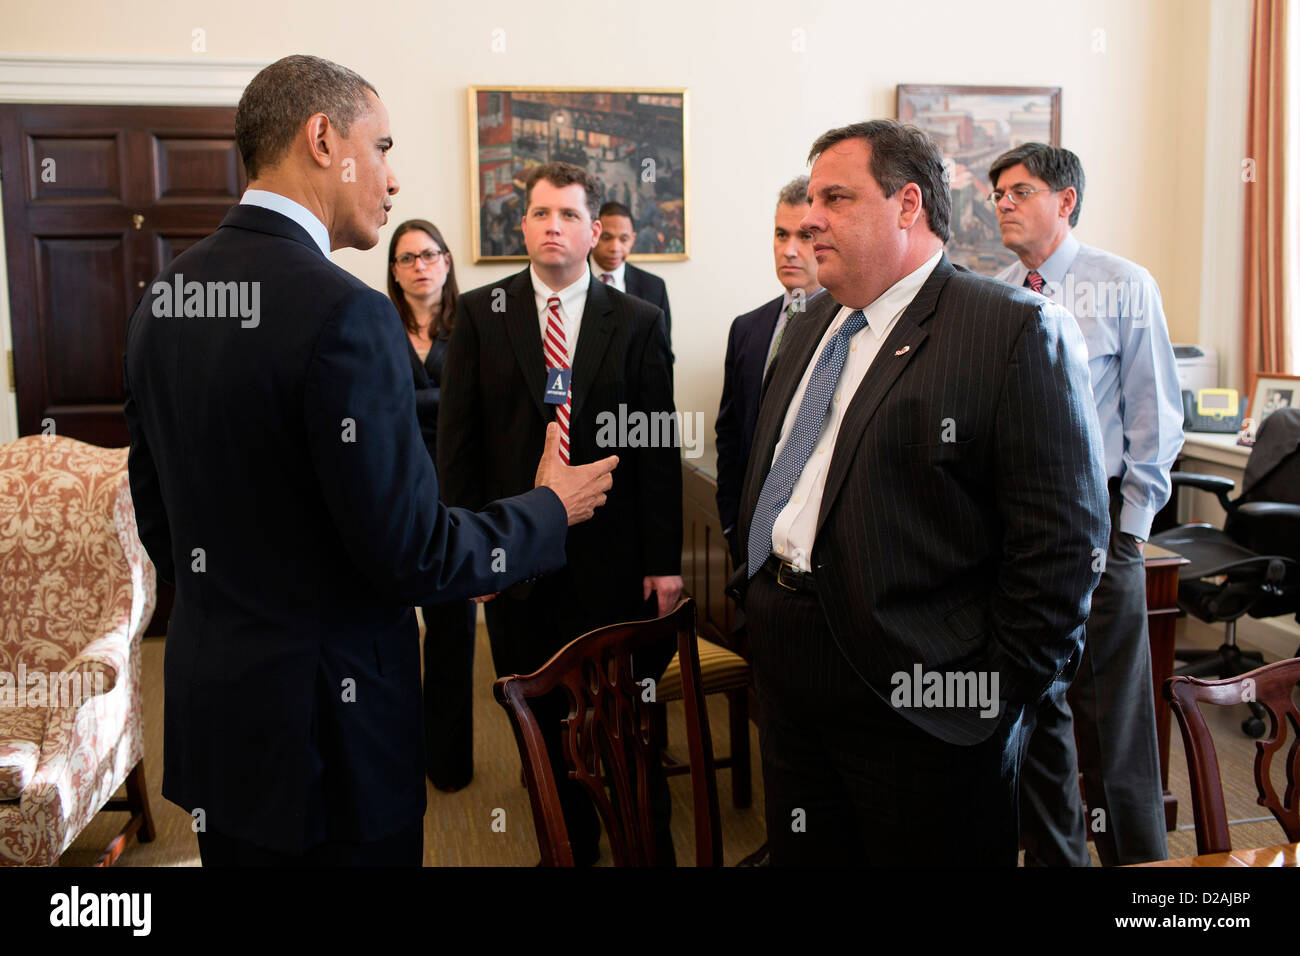 US President Barack Obama greets New Jersey Governor Chris Christie and members of his staff in Chief of Staff Jack - Stock Image